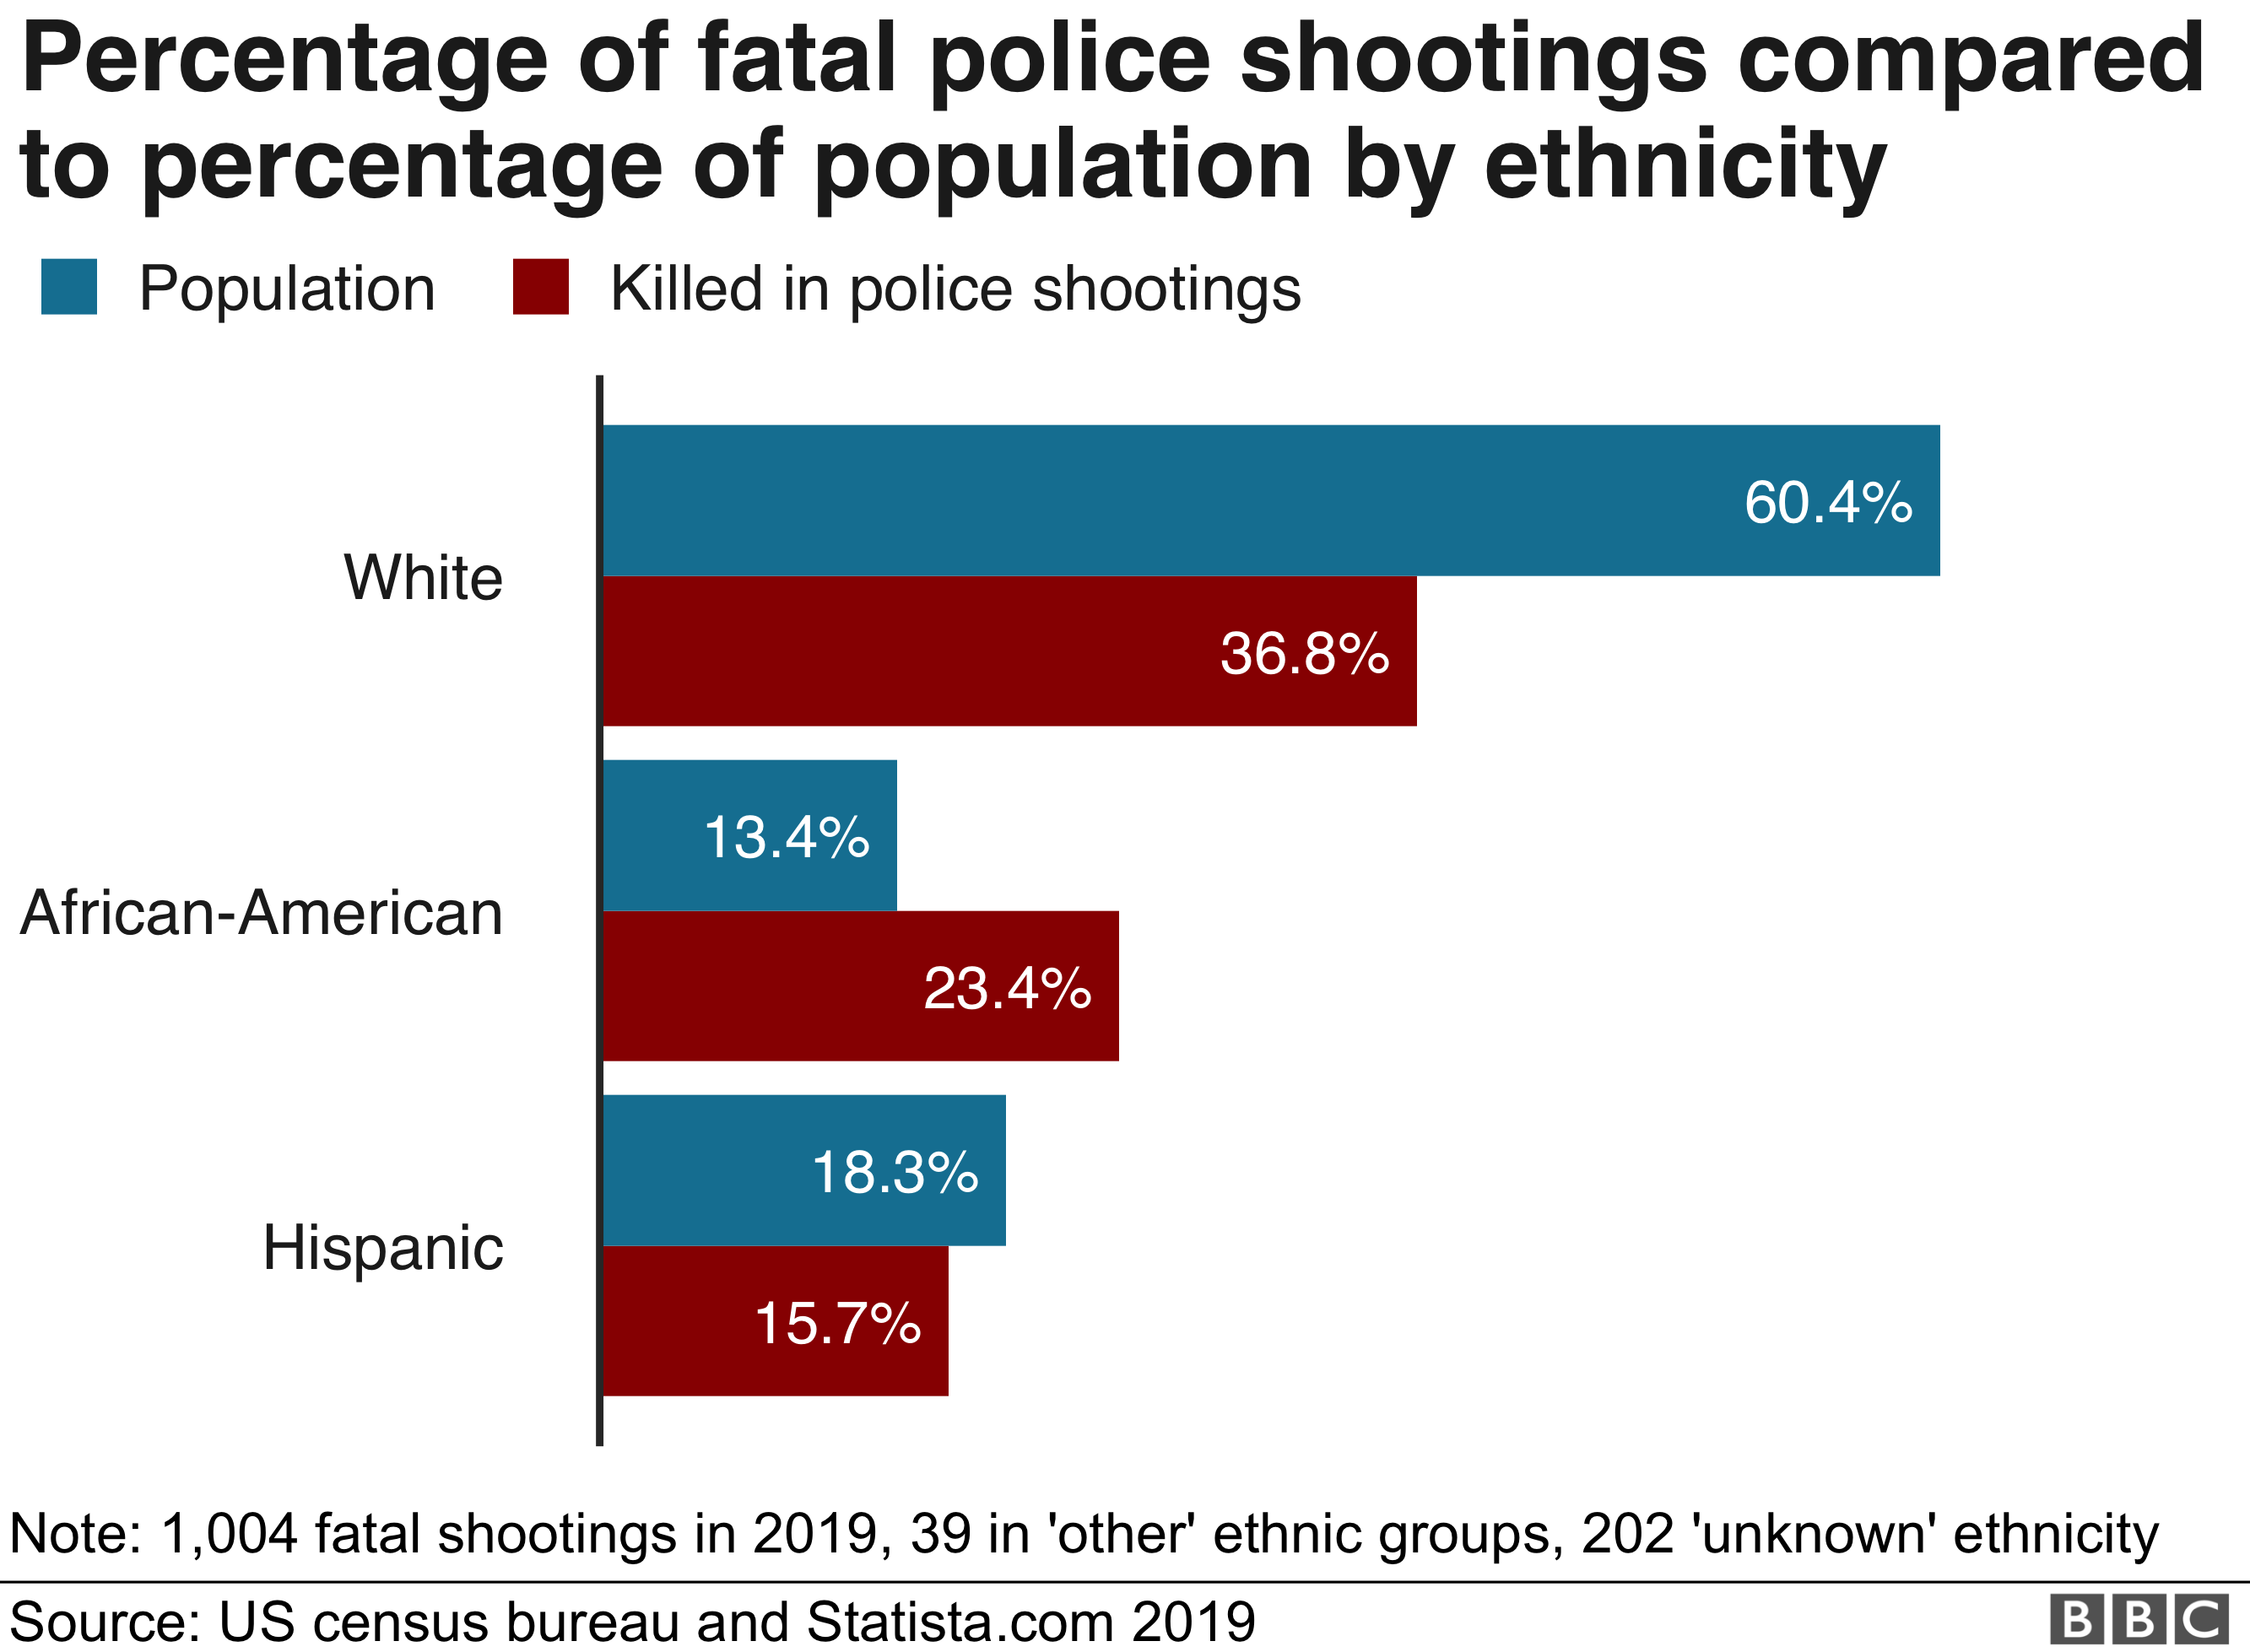 A BBC chart shows the percentage of fatal police shootings compared to the percentage of population by ethnicity